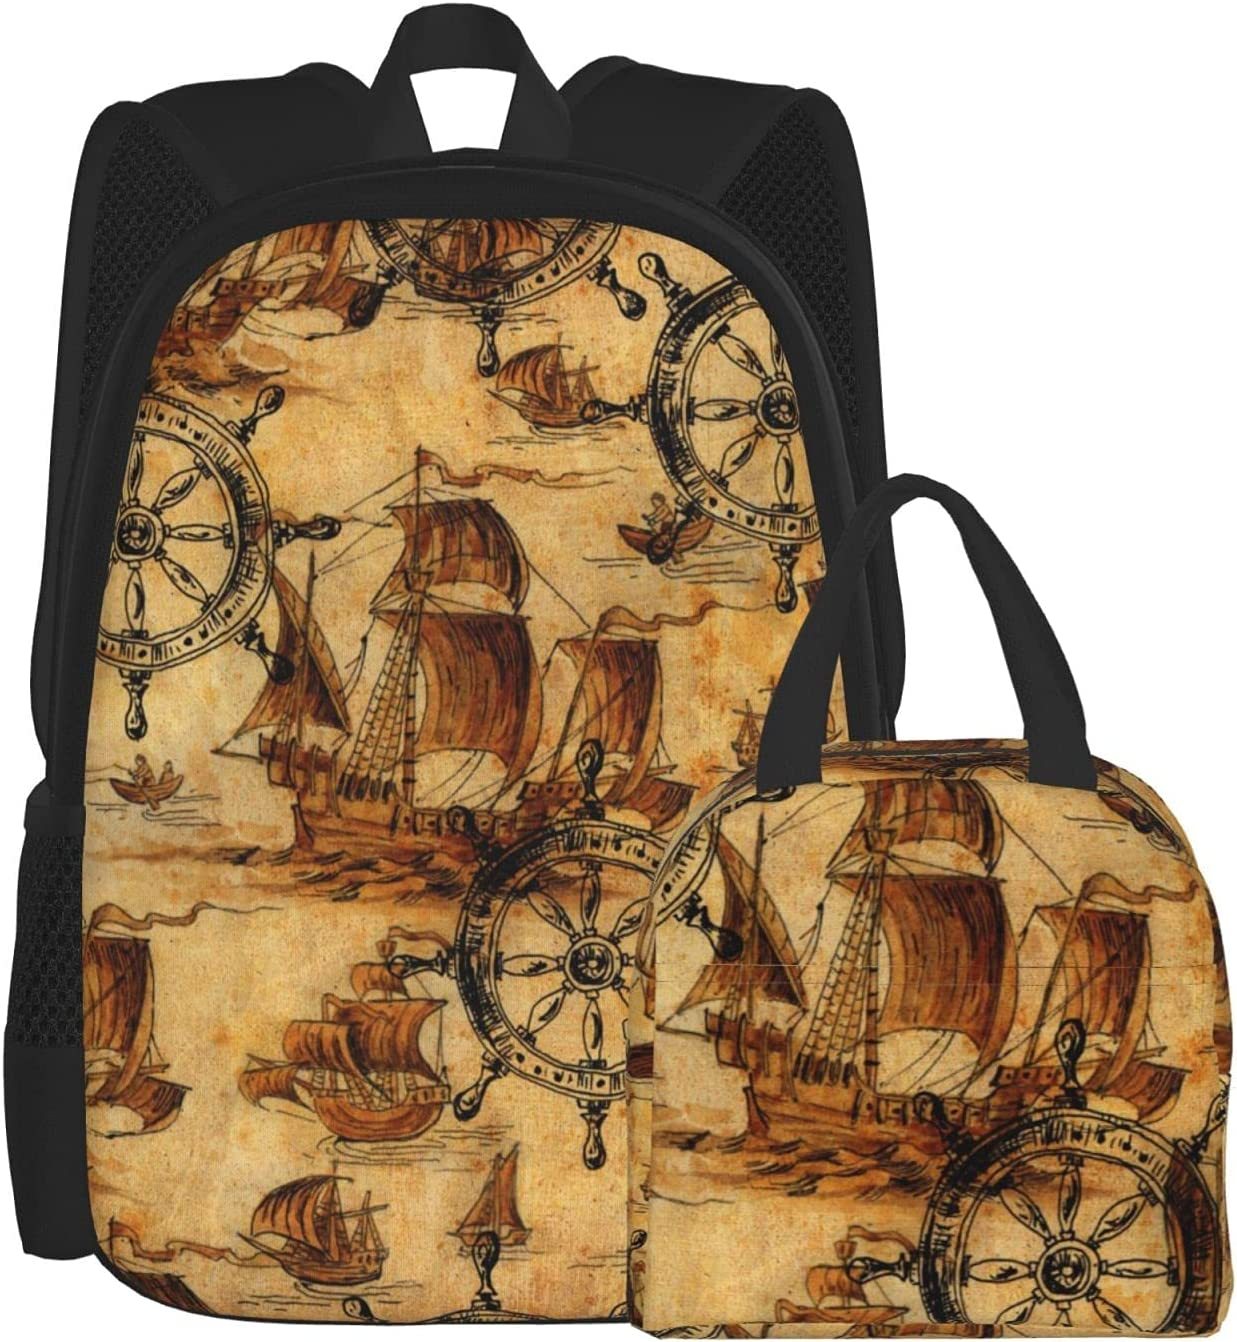 Backpacks for Girls Boys Vintage Sea B Max 53% OFF Lunch Unisex Marine Brand Cheap Sale Venue Theme